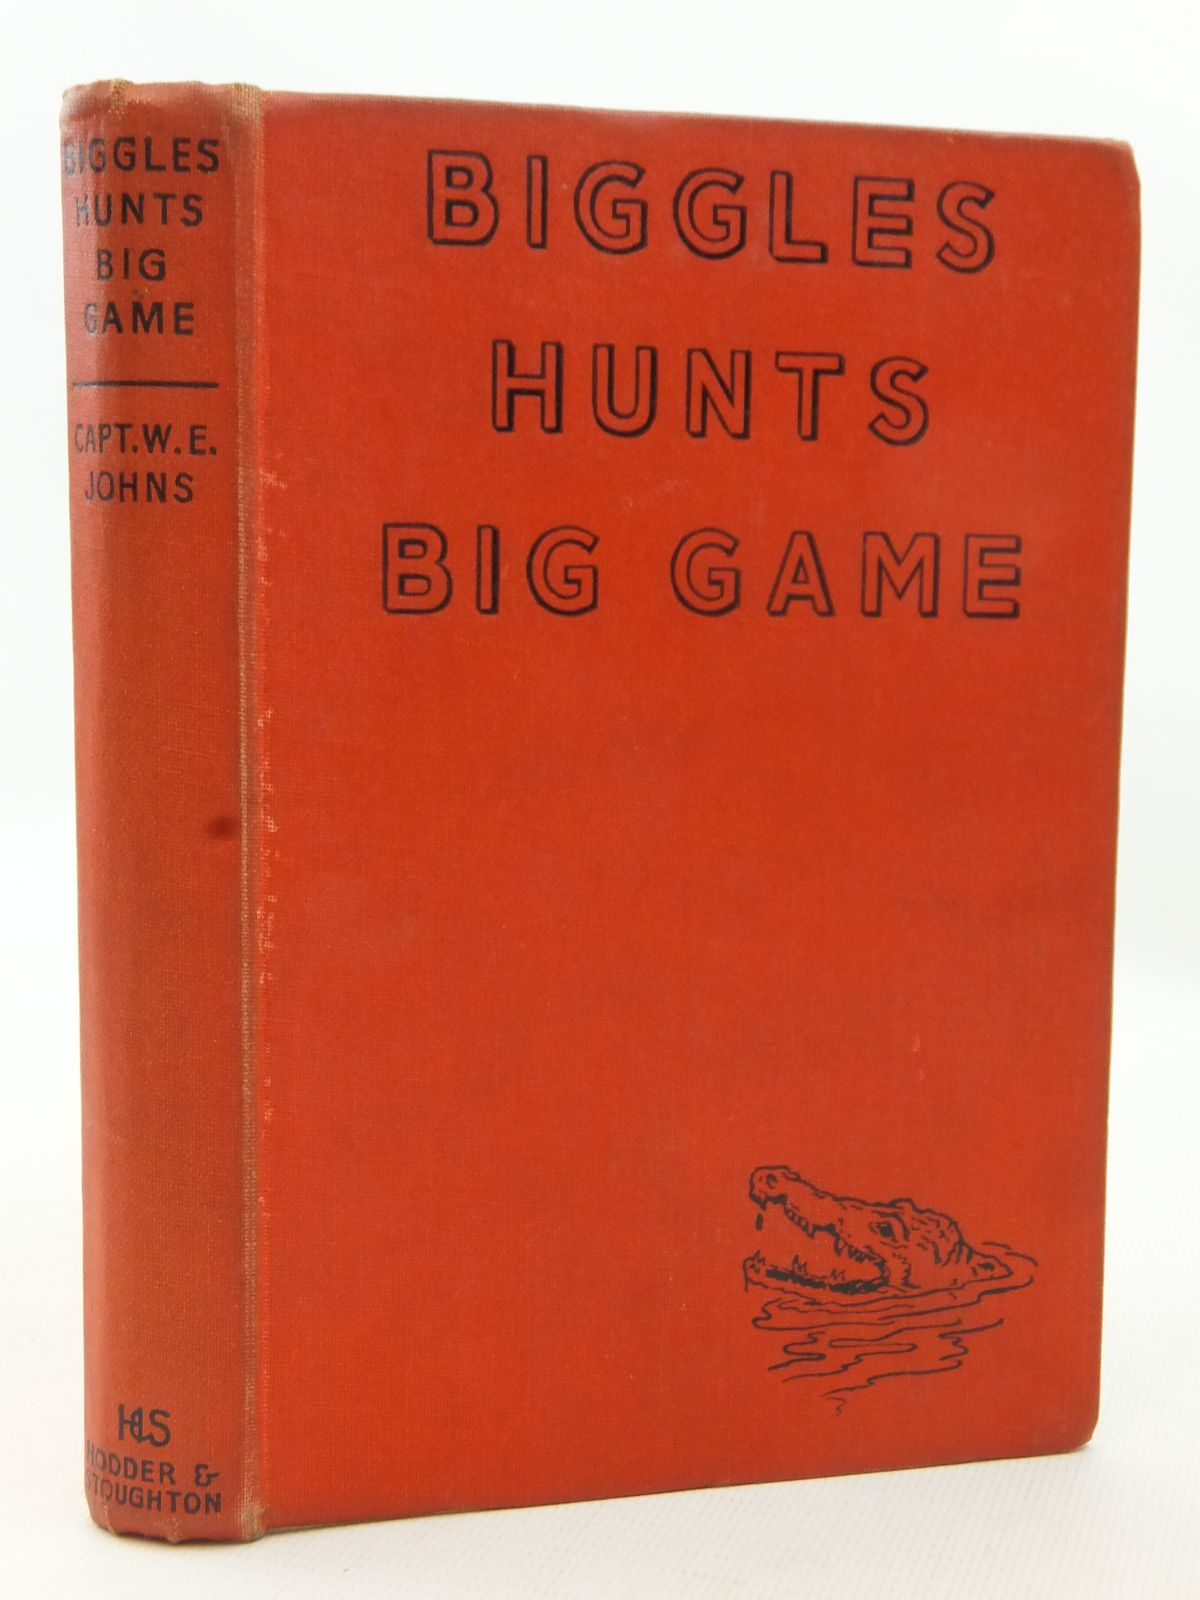 Photo of BIGGLES HUNTS BIG GAME written by Johns, W.E. illustrated by Stead,  published by Hodder & Stoughton (STOCK CODE: 2123181)  for sale by Stella & Rose's Books